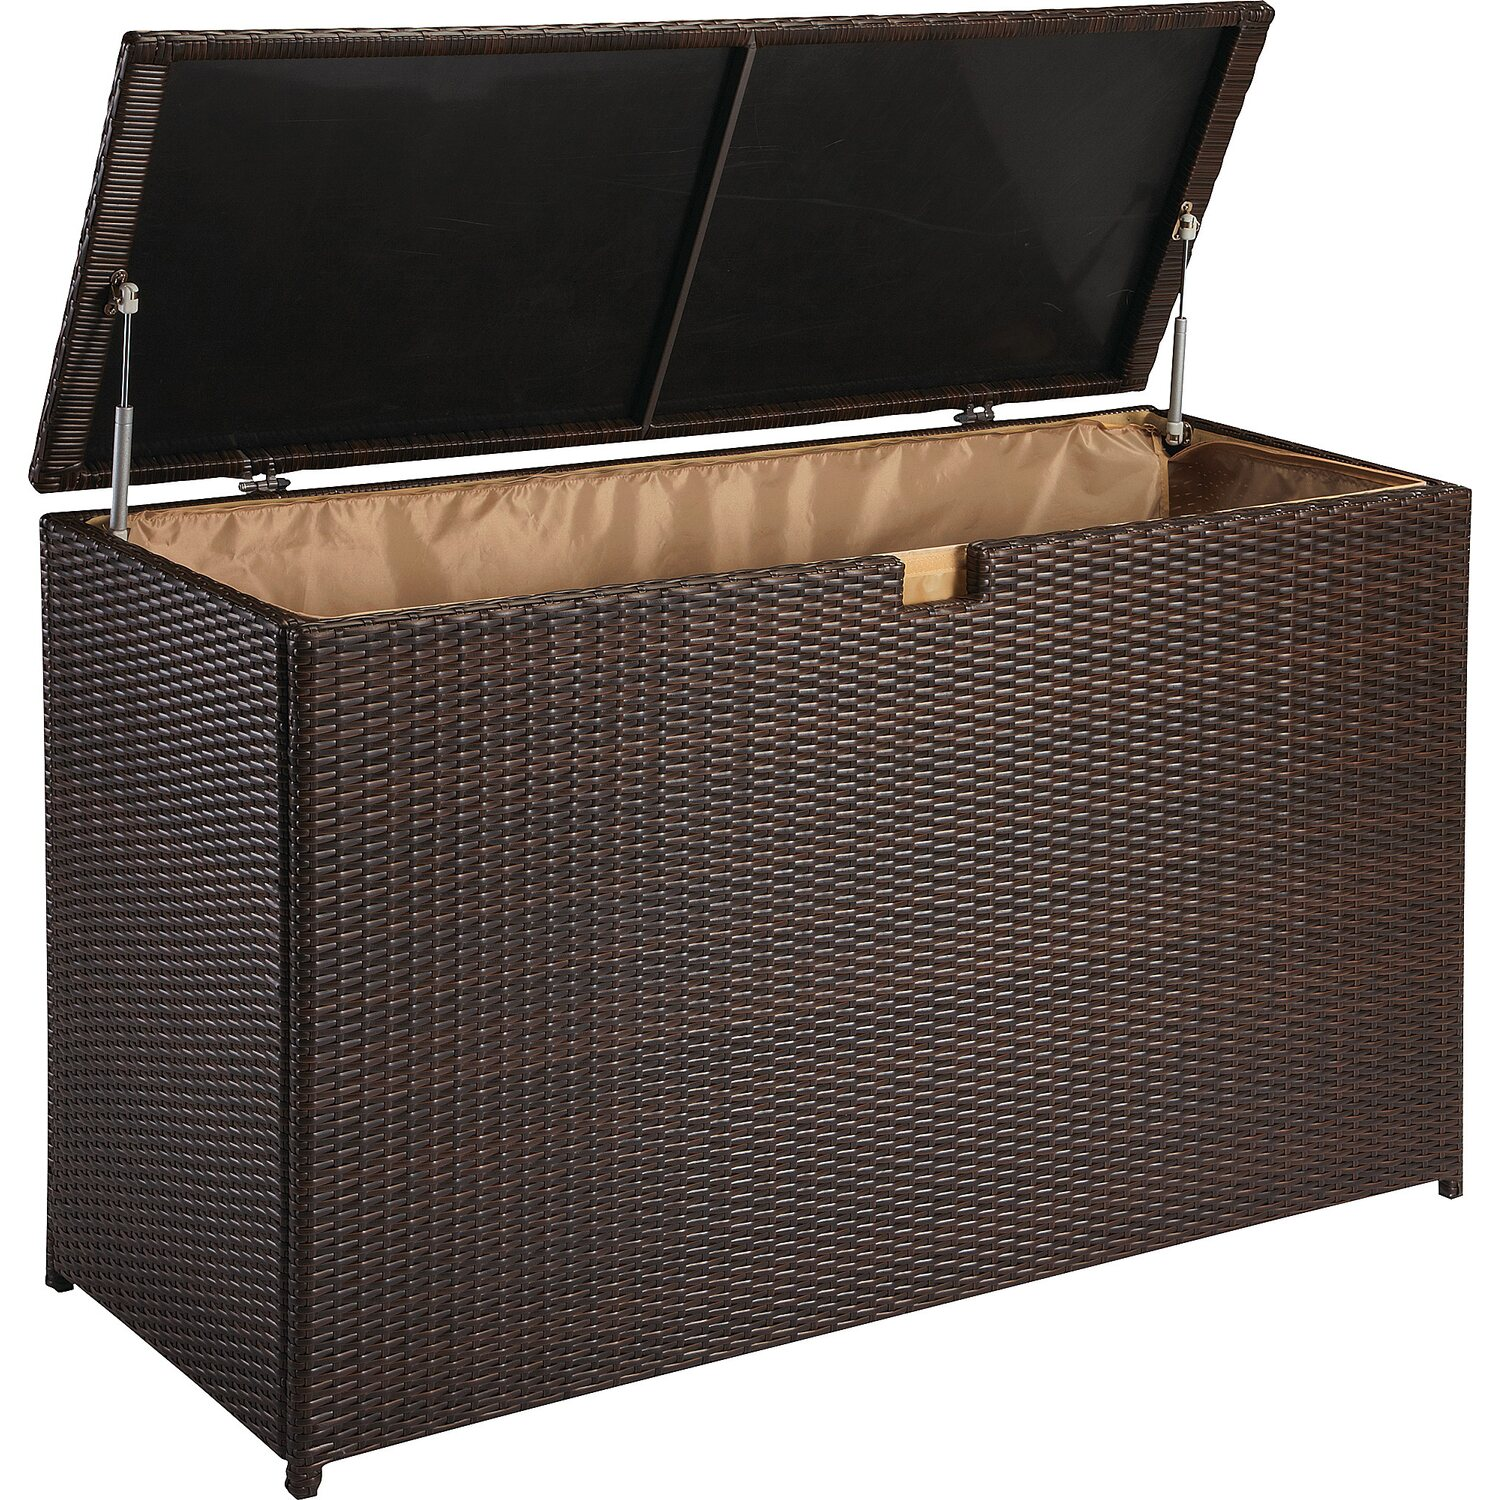 obi kissenbox davenport ii braun kaufen bei obi. Black Bedroom Furniture Sets. Home Design Ideas